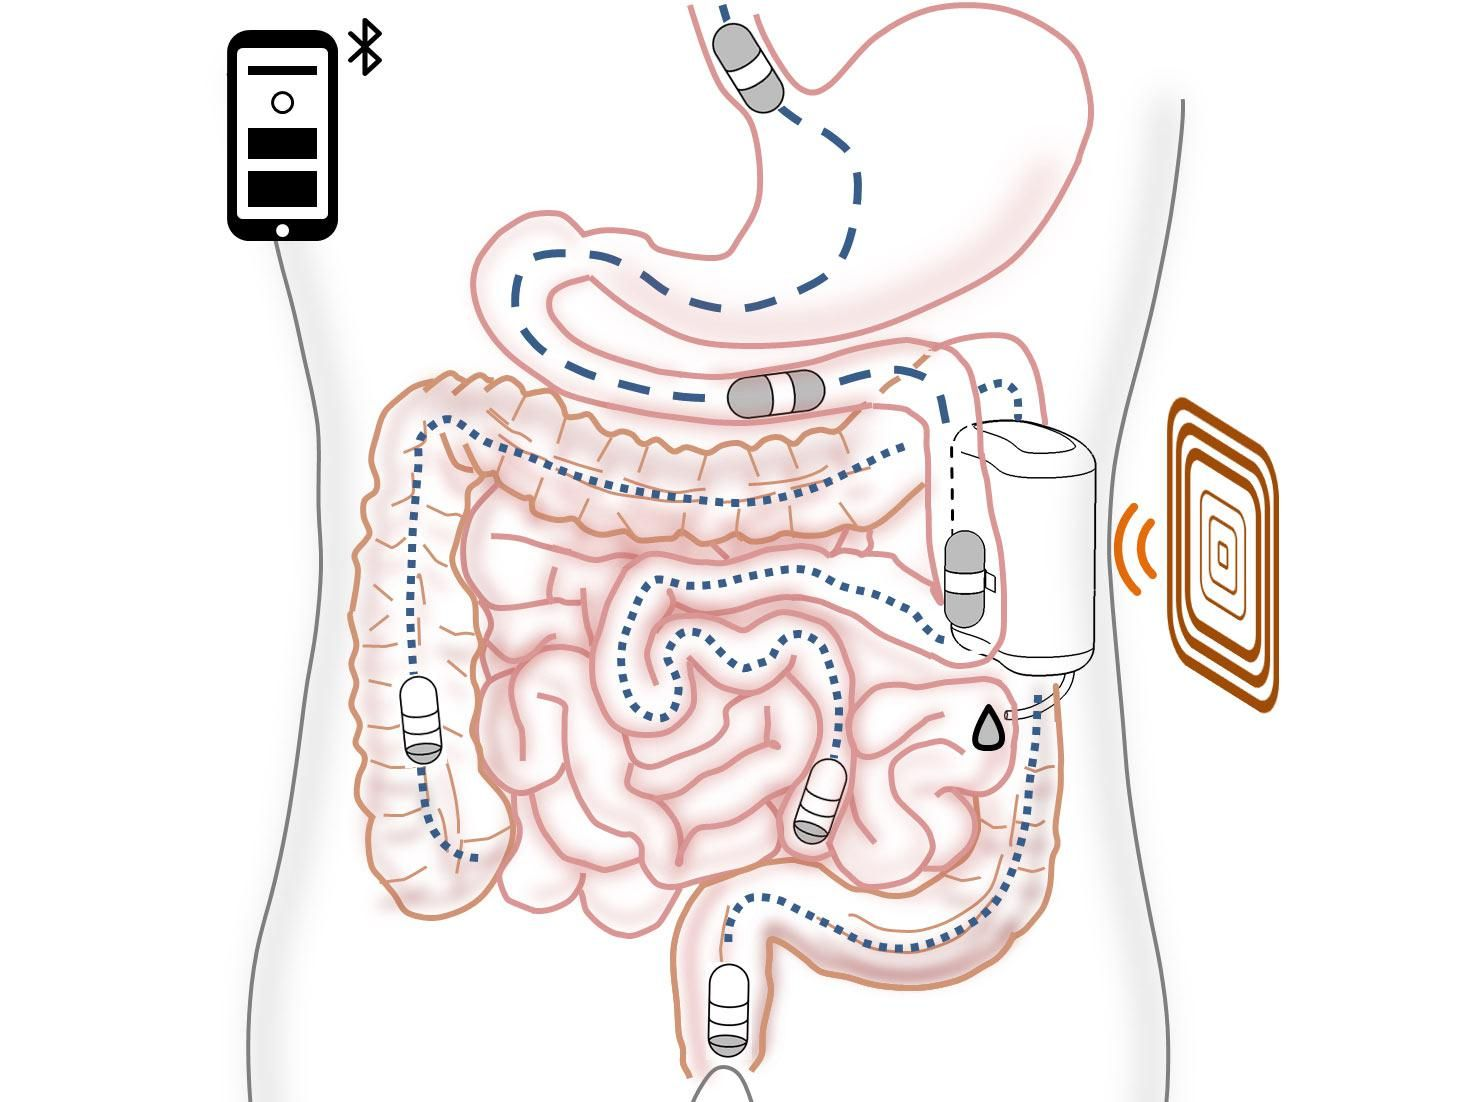 A diagram shows the concept of a robotic insulin delivery system that would be implanted in the gut.